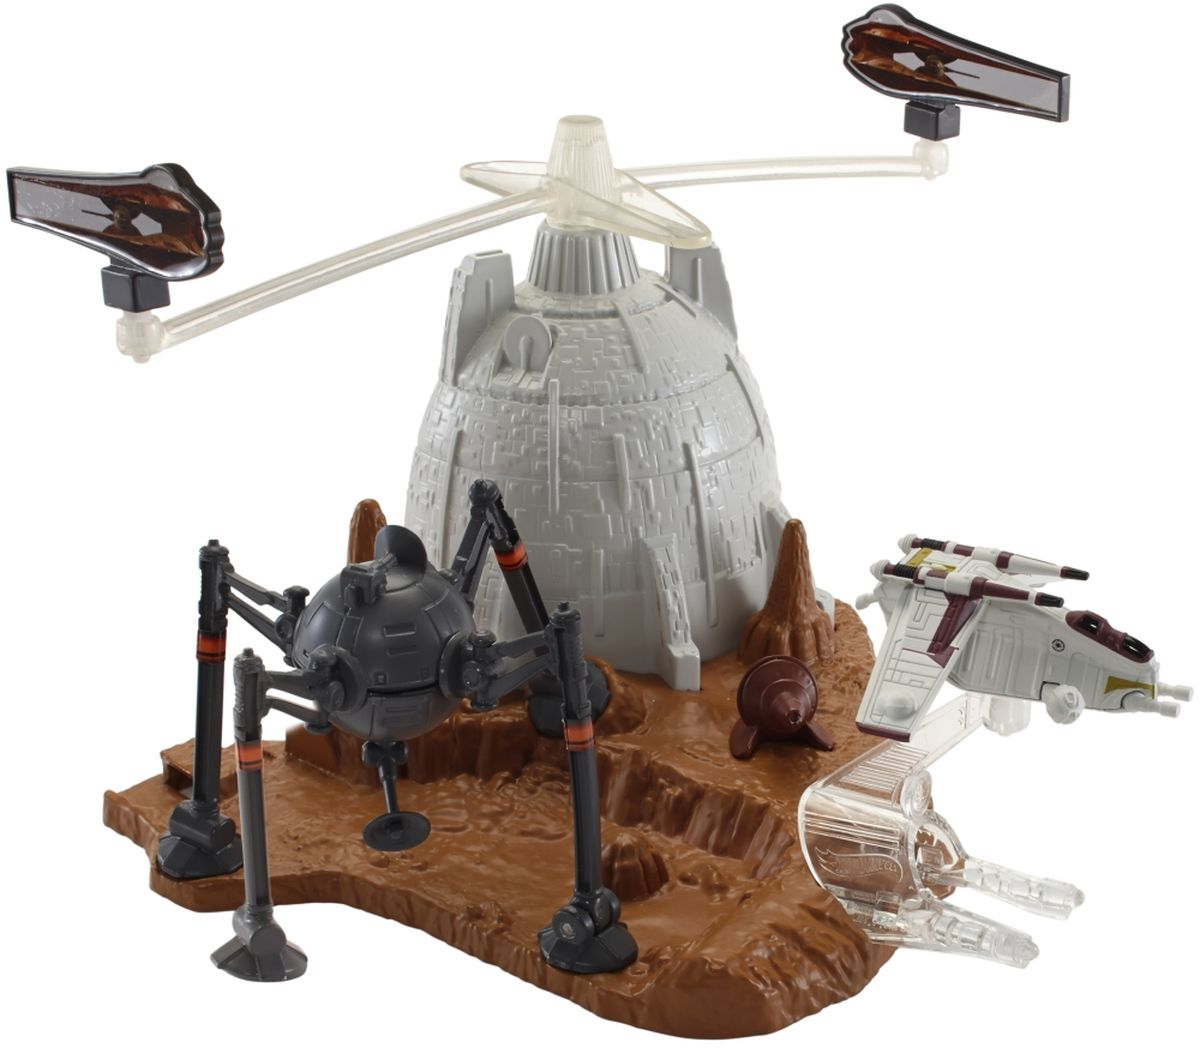 Hot Wheels Star Wars Игровой набор Battle of Geonosis